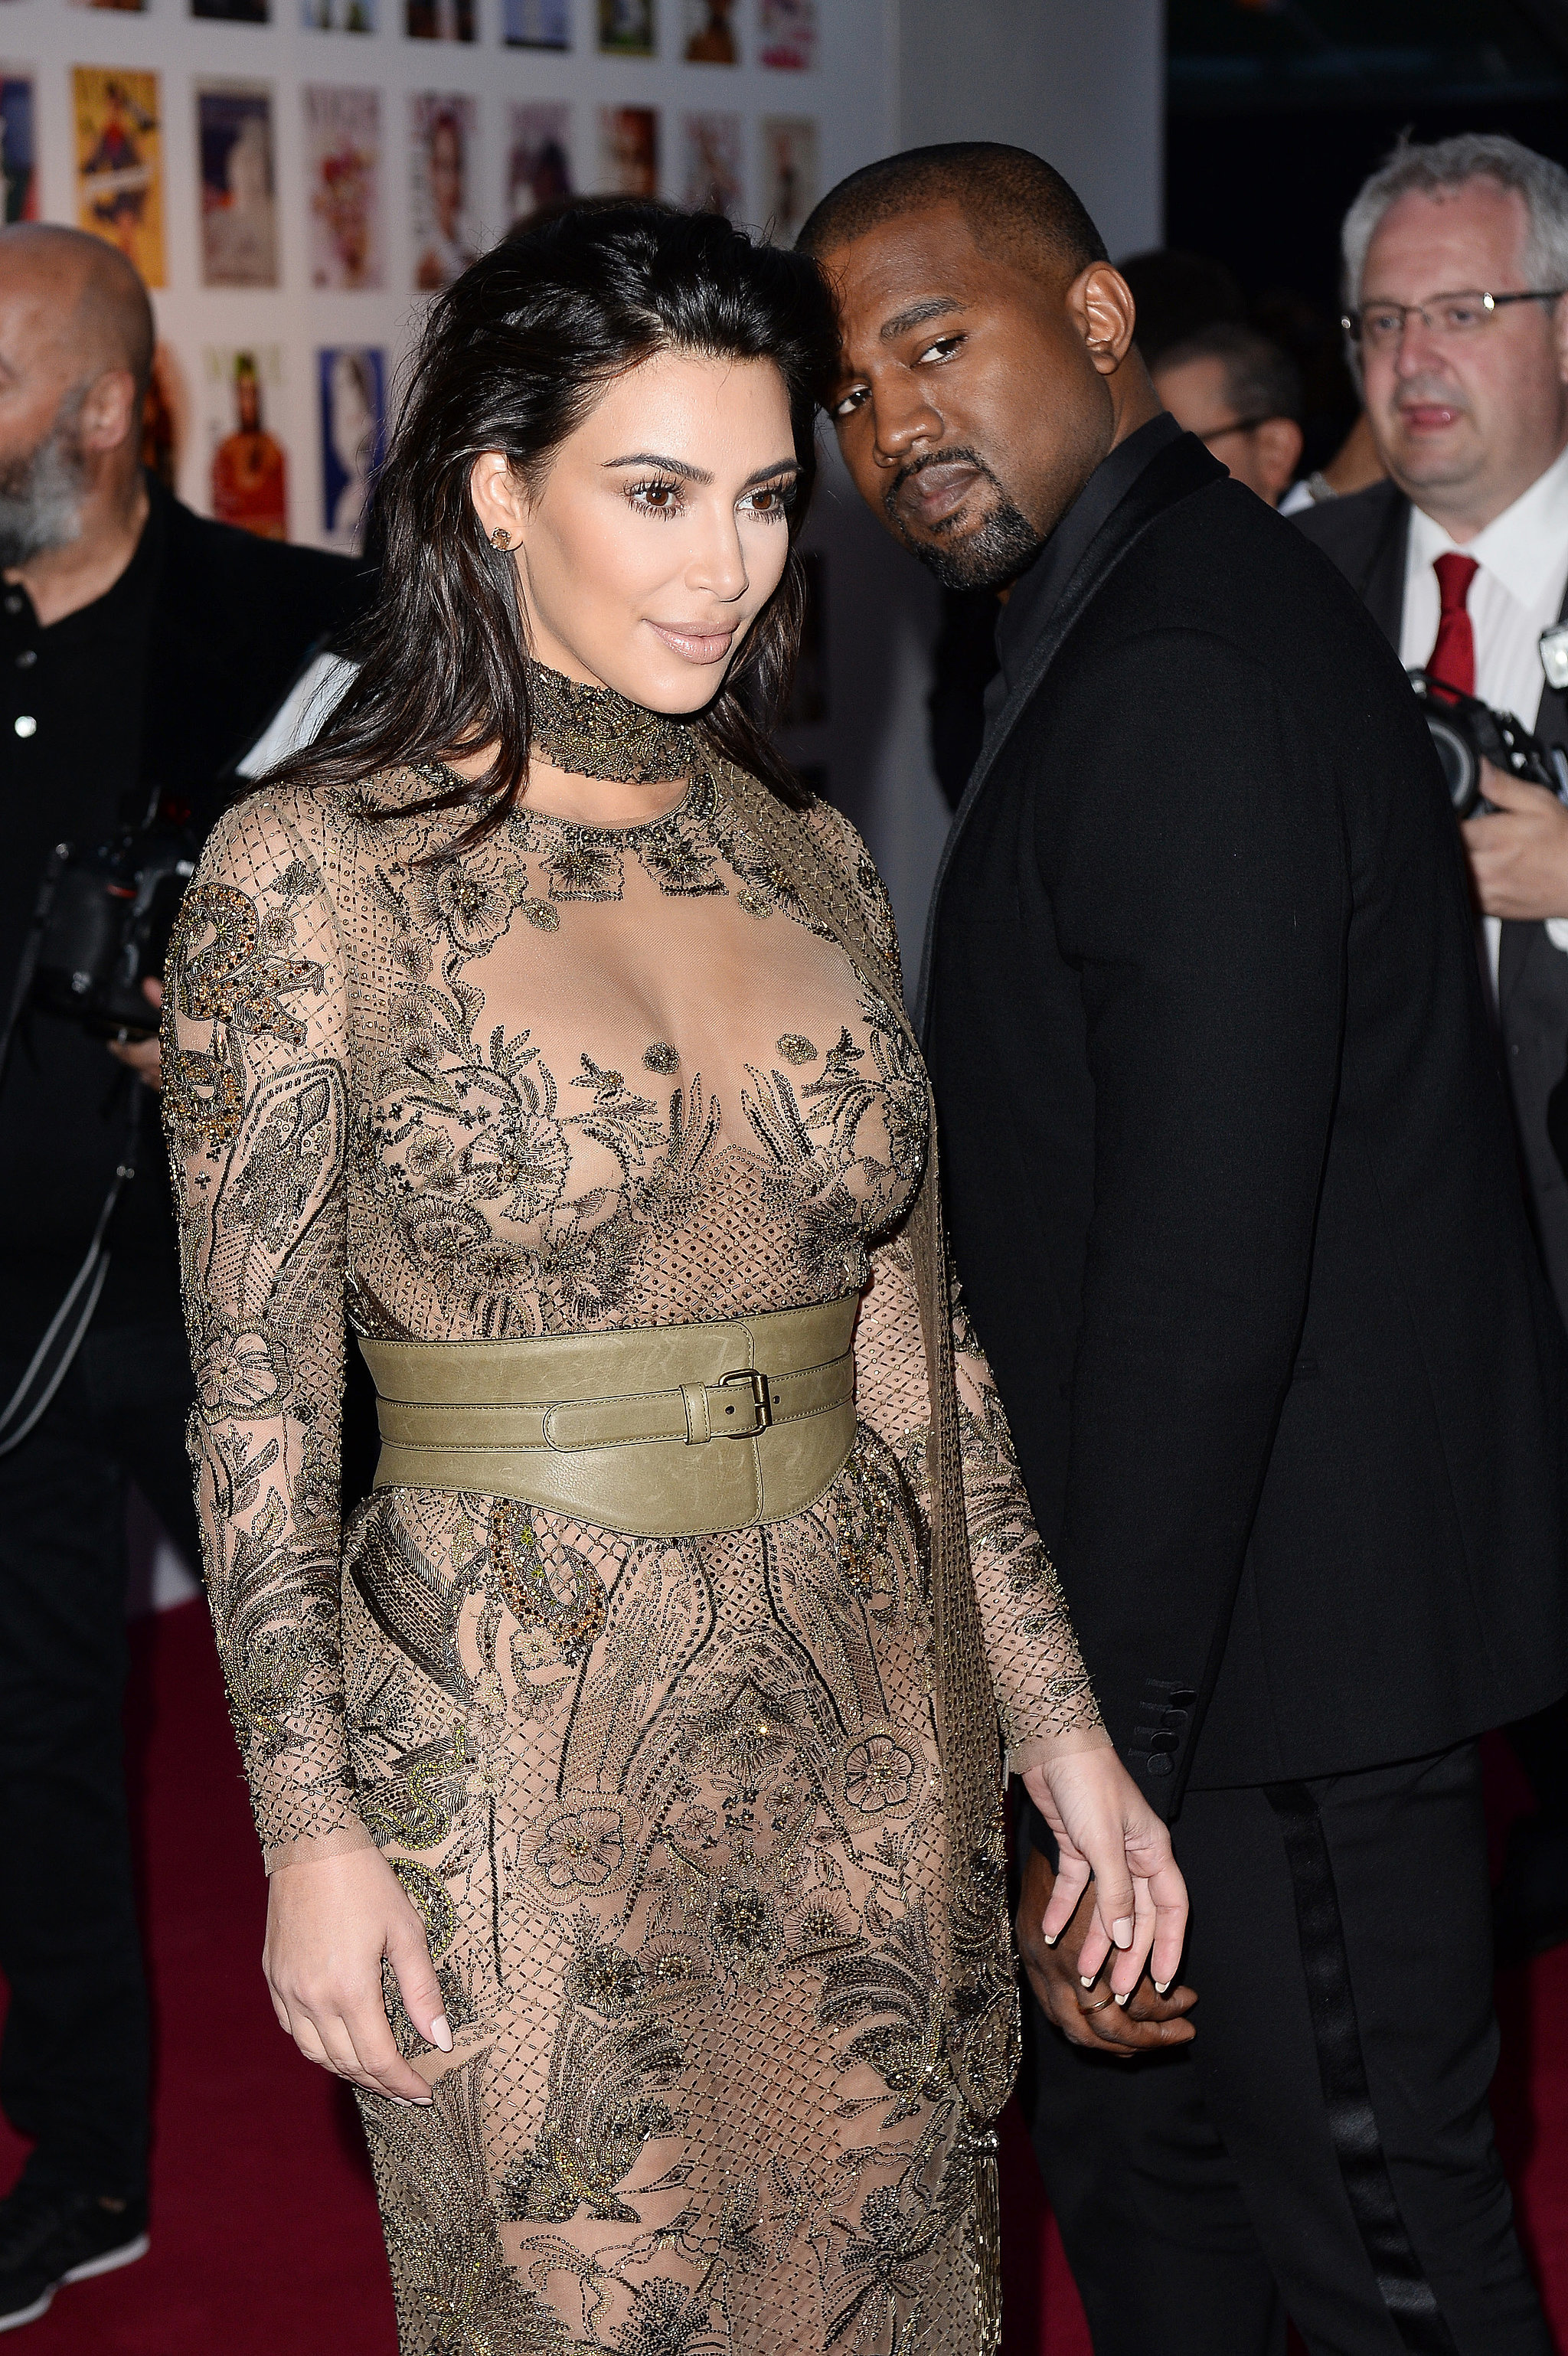 Kim-Kardashian-Kanye-West-Vogue-100-Gala-Dinner-2016 (1)